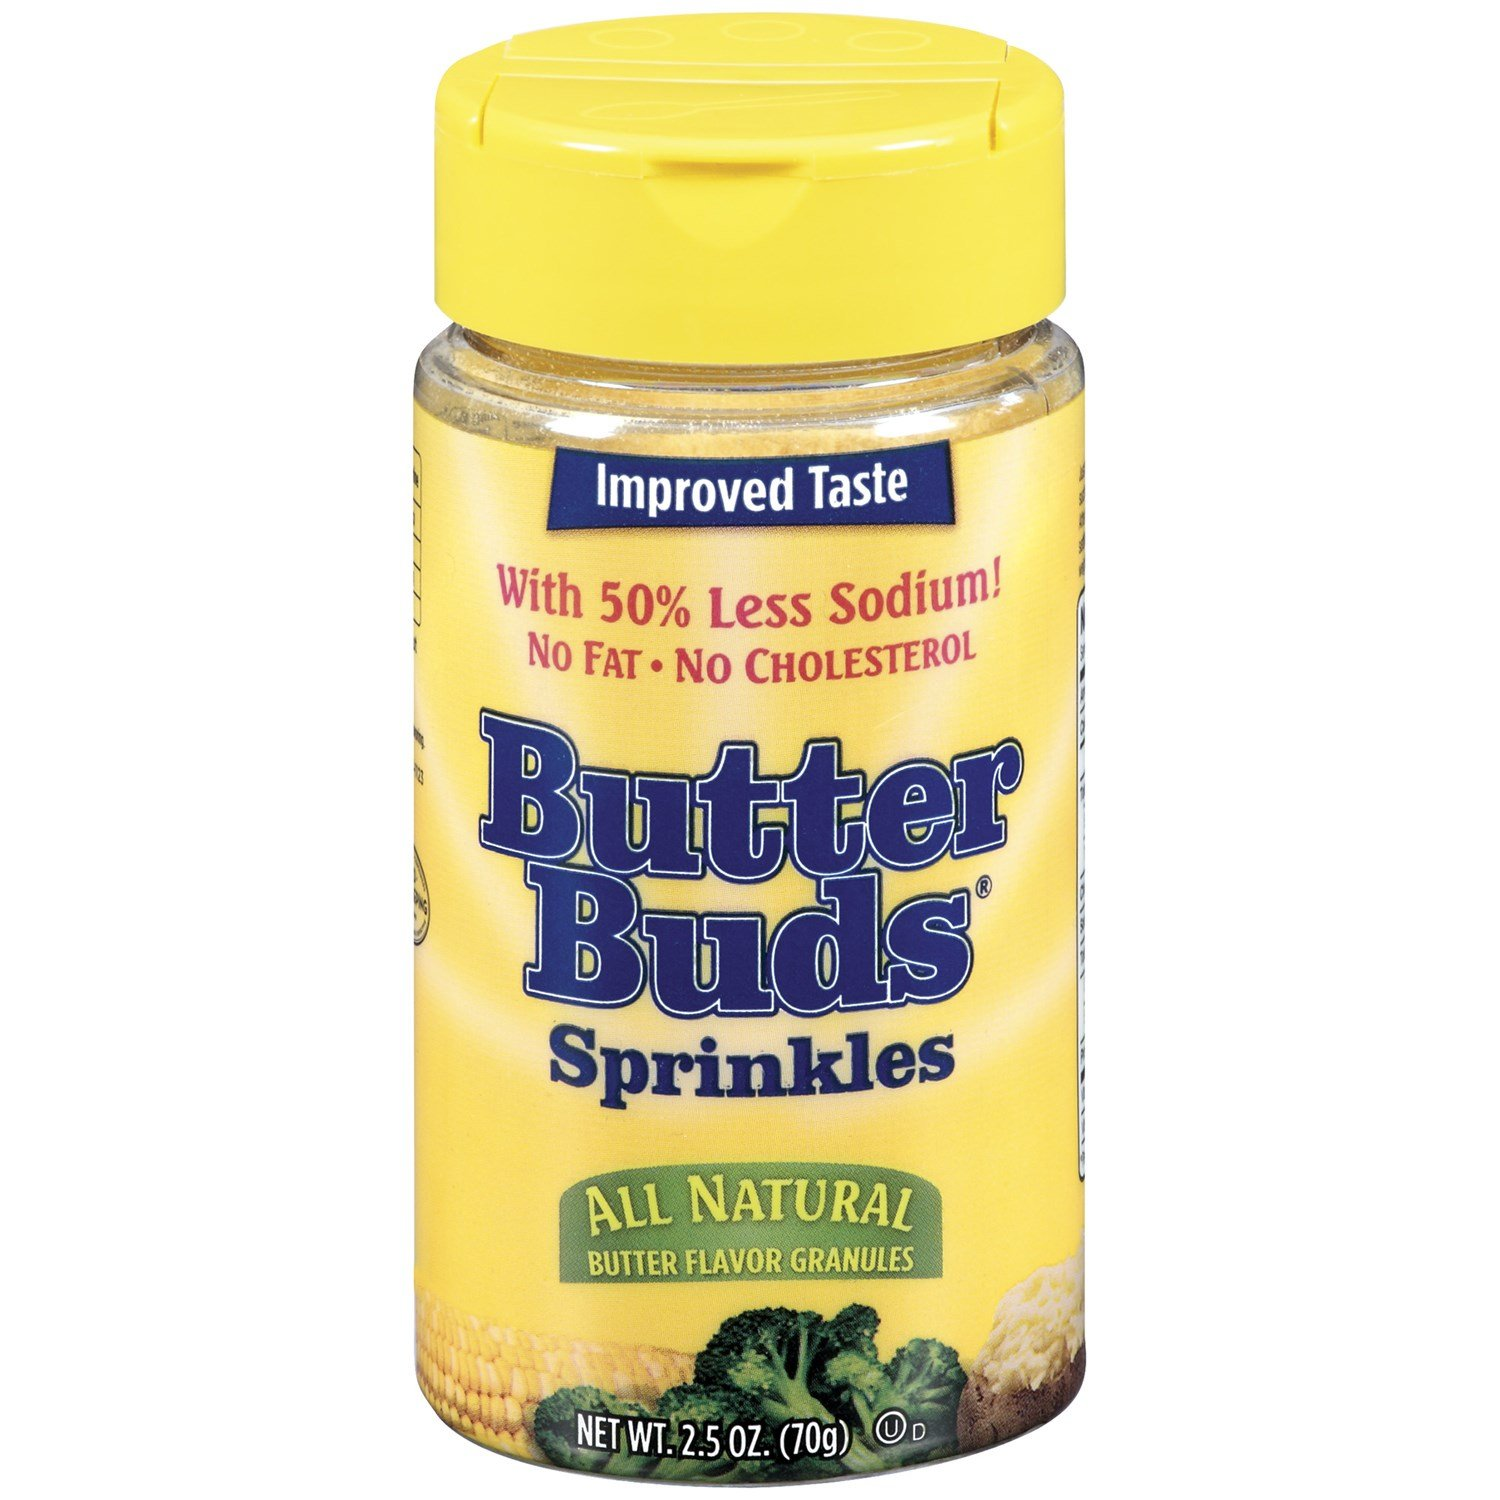 Butter Buds, Sprinkles, Butter Flavored Granules, 2.5 Ounce (Pack of 3) by Butterbuds